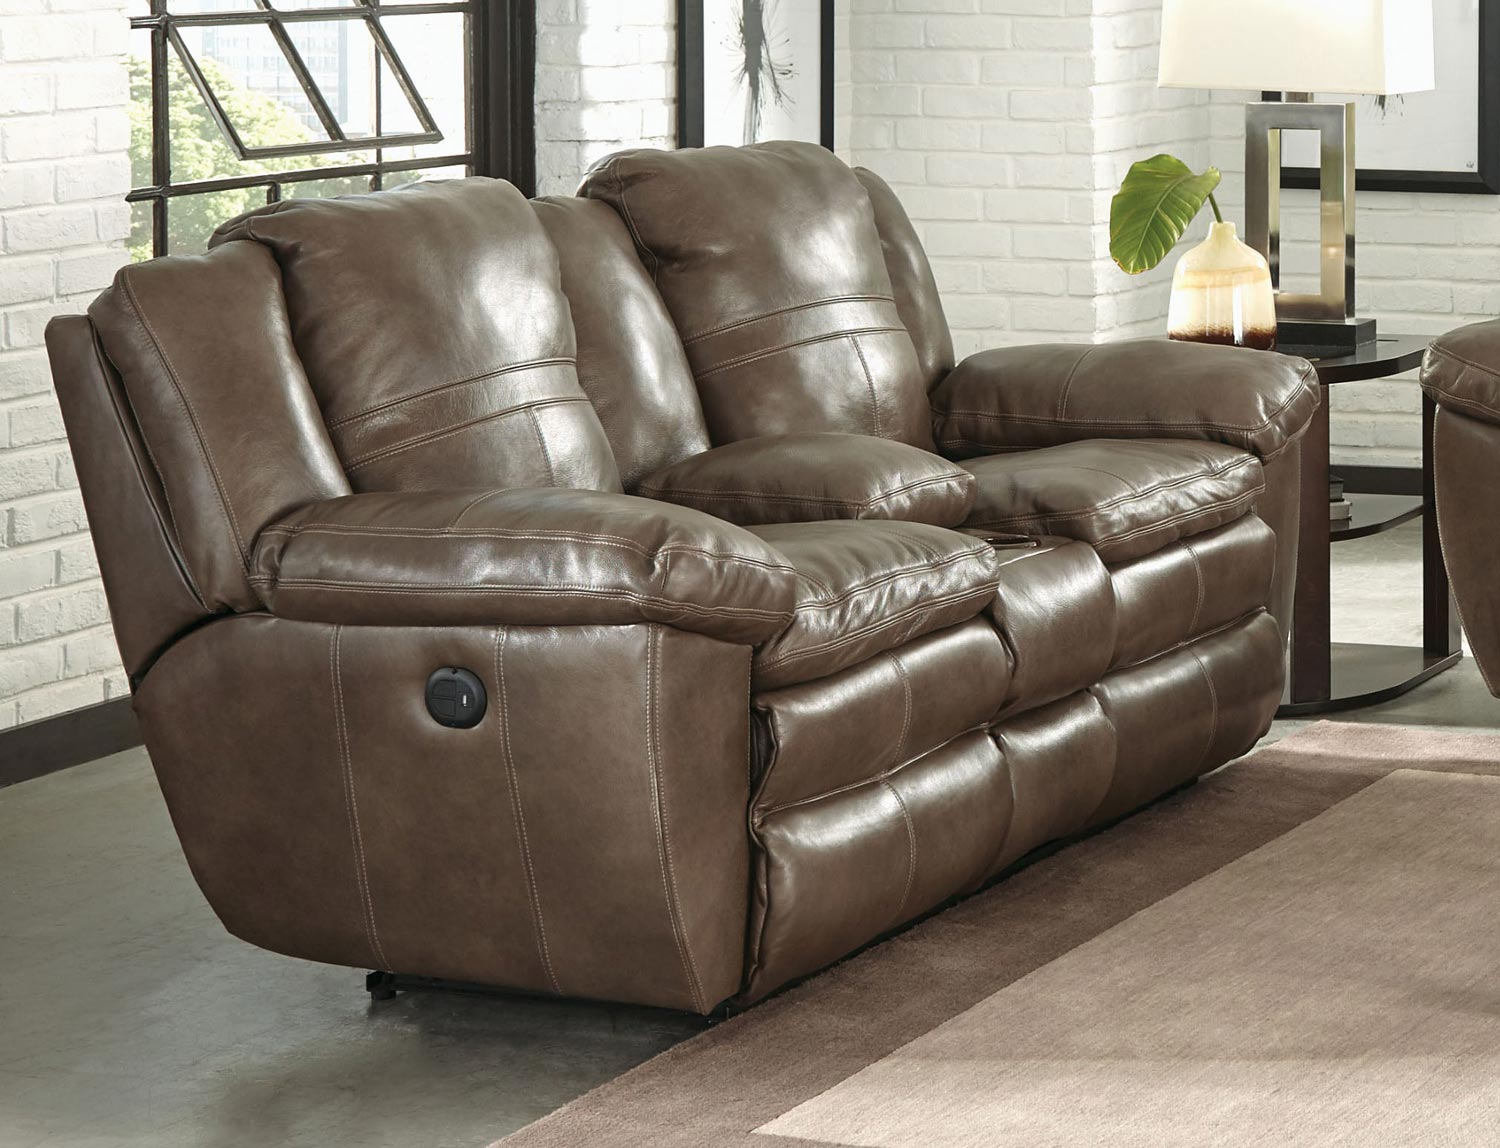 collection grain reclining leather catnapper with sofa sofas loveseat smoke aria by italian top lay flat